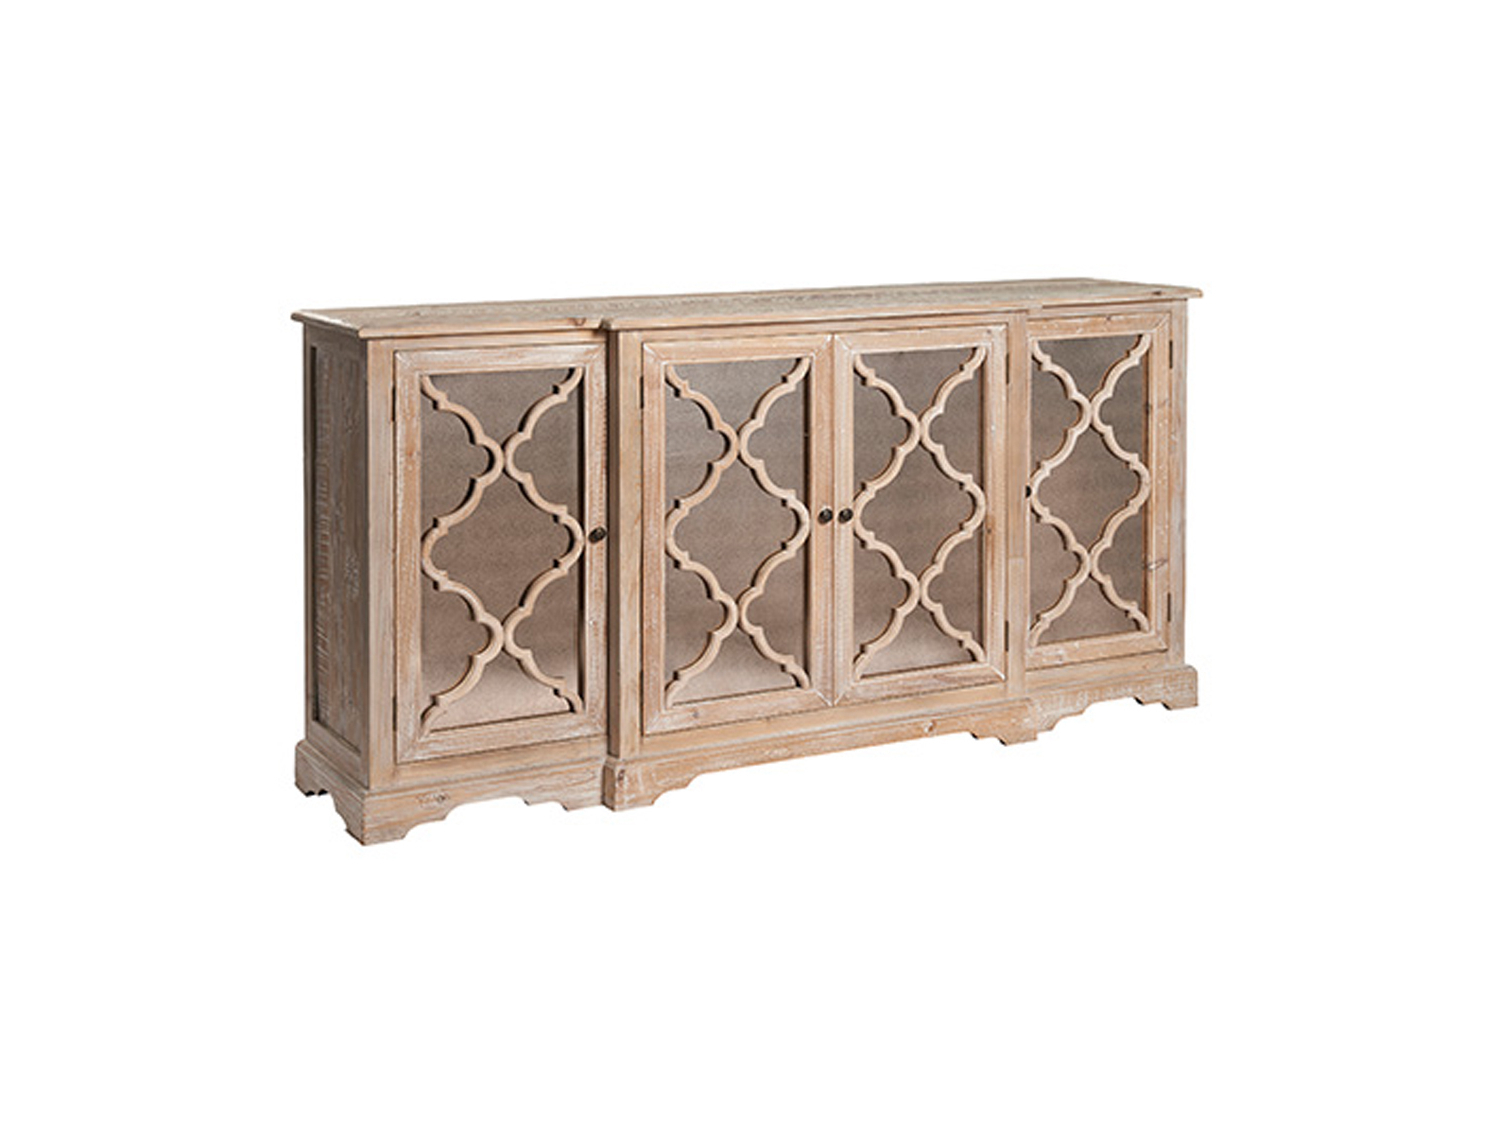 Acepello Lowery Four Door Sideboard From Dansk With Most Up To Date Ruskin Sideboards (View 3 of 20)